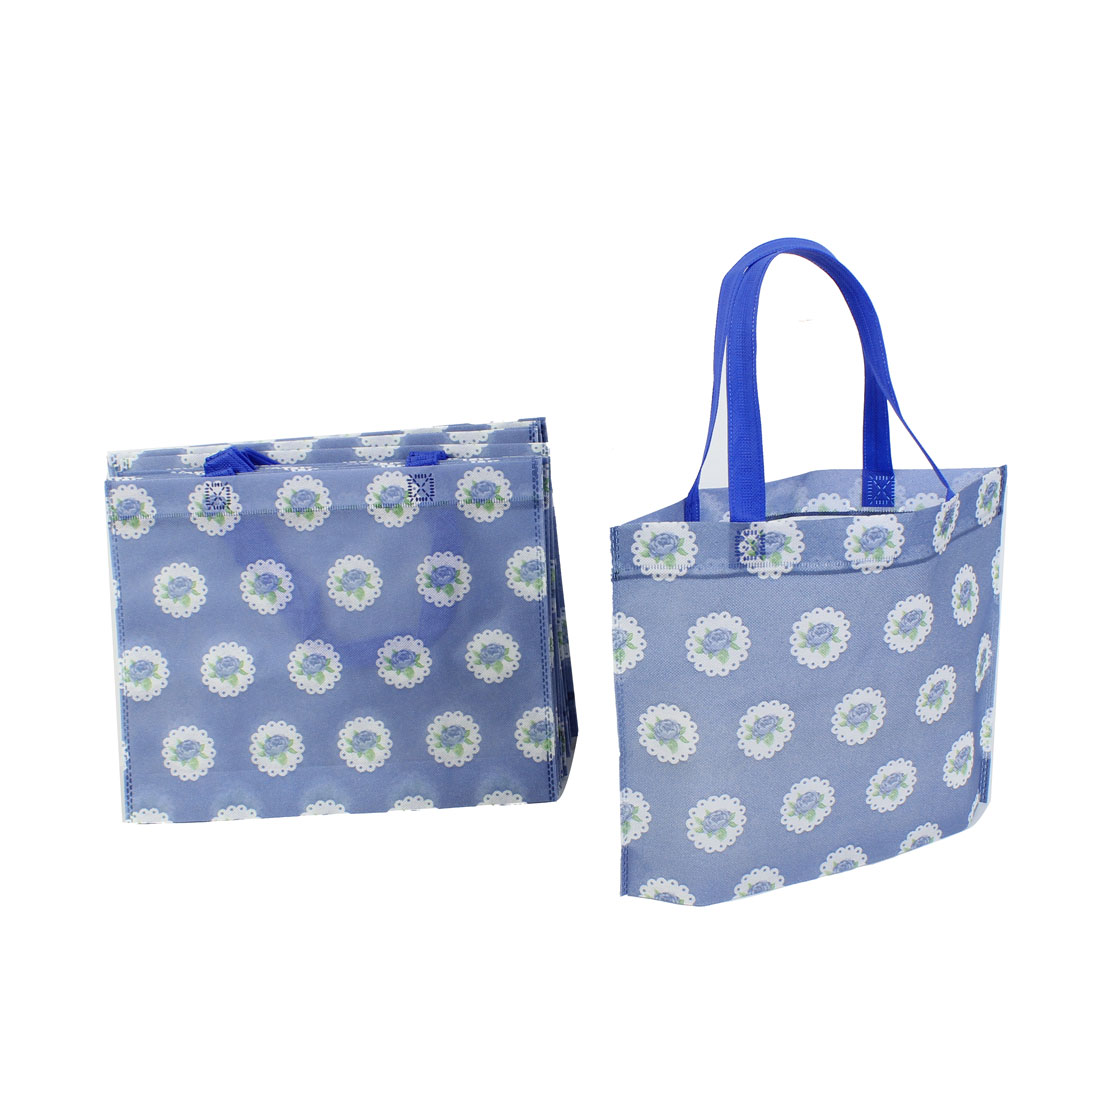 Non Woven Flower Printed Reusable Shopping Bag 35cm x 28cm Blue 20 Pcs